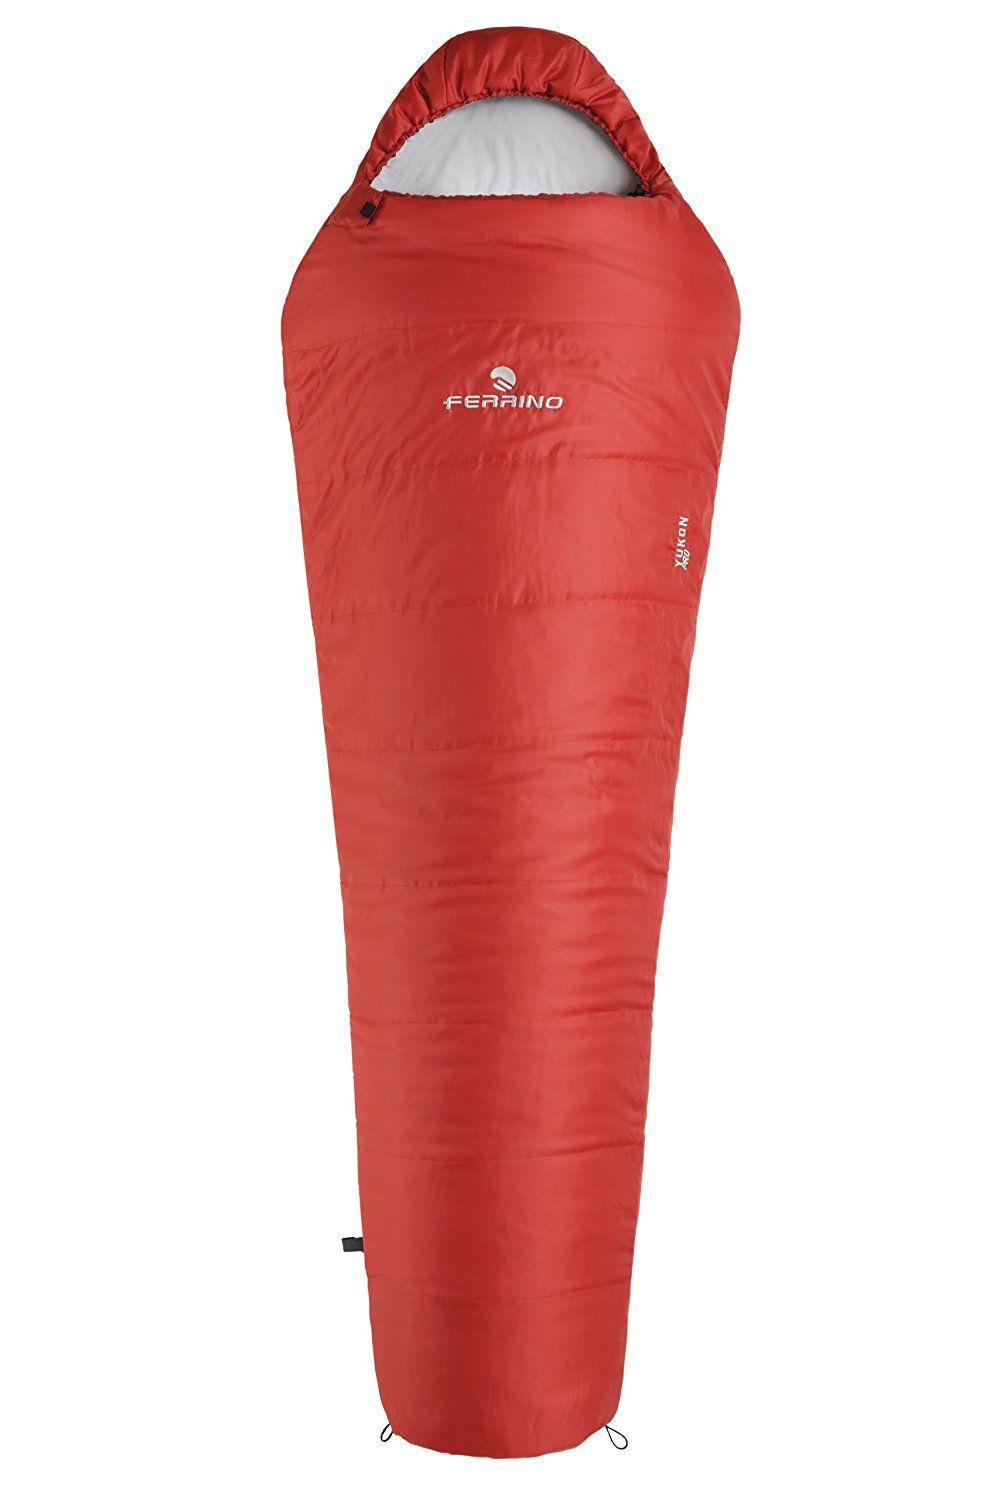 Ferrino Yukon Pro Right Zip Sleeping Bag See This Awesome Image Camping Bags